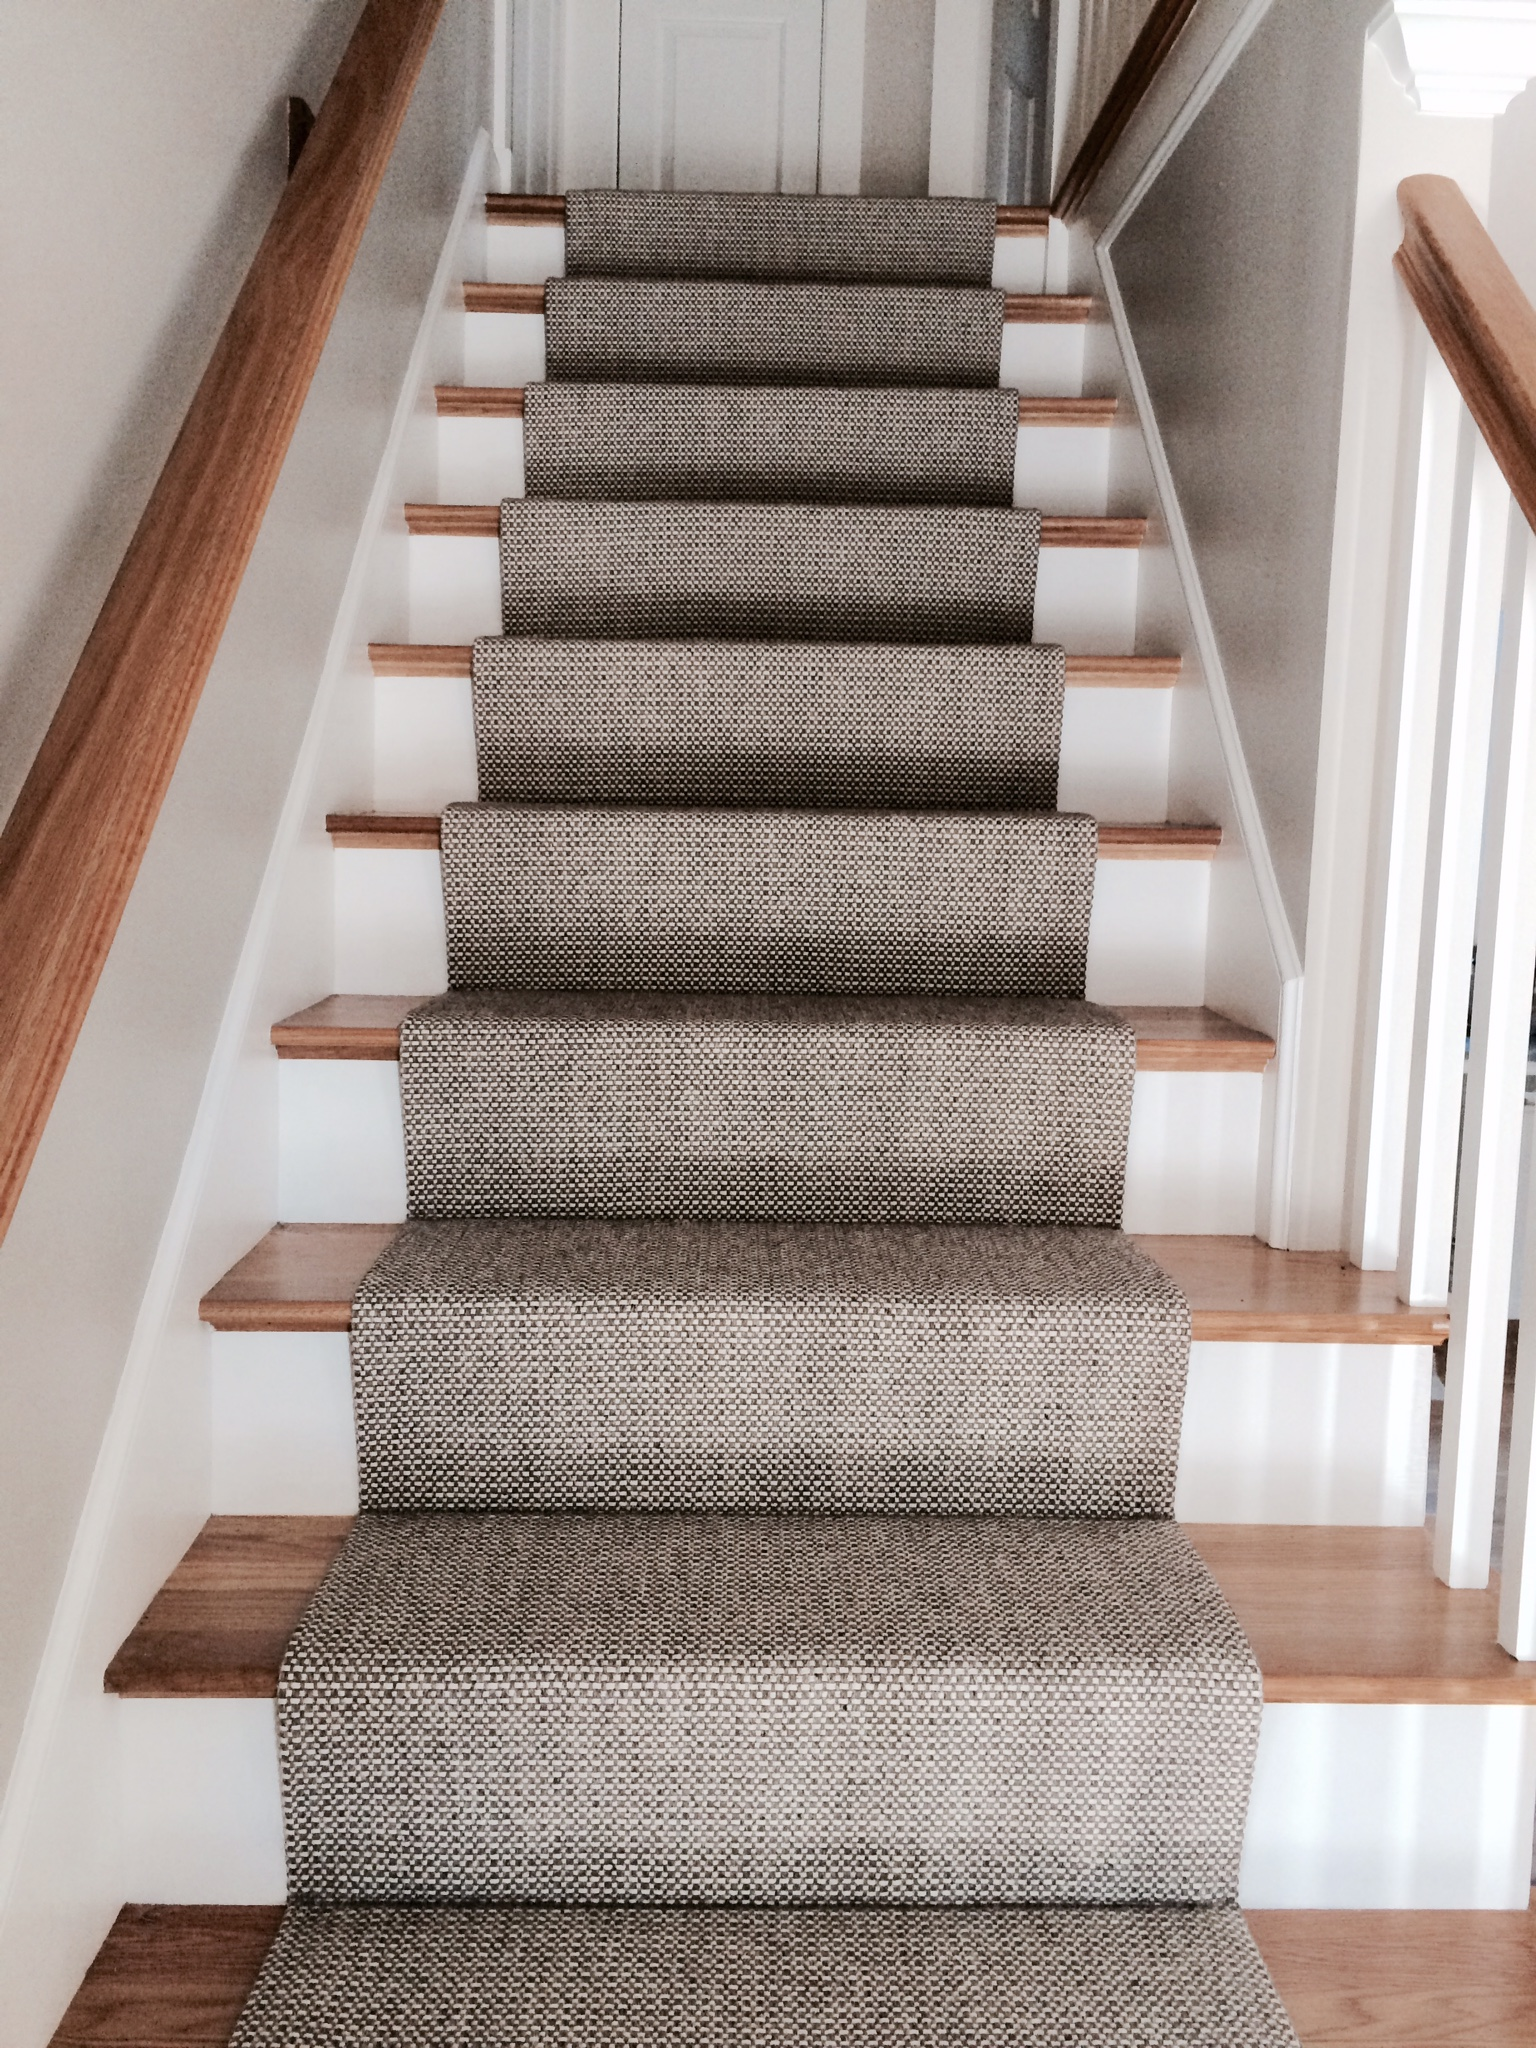 Popular Merida Flat Woven Wool Stair Runner By stair runner carpet